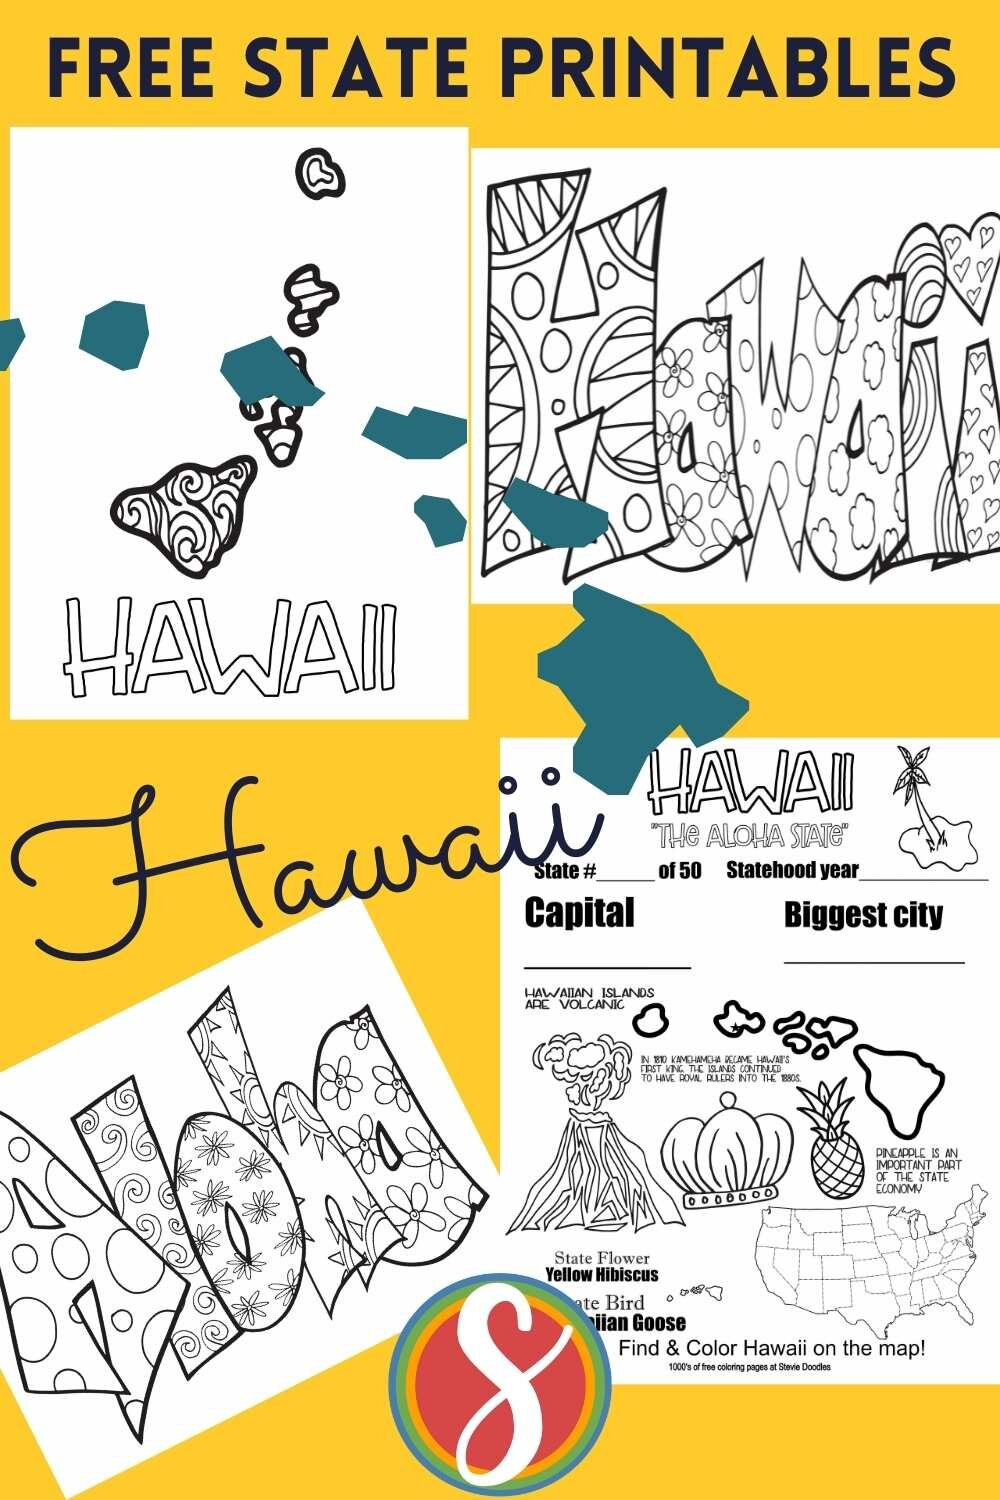 U.S. state - free printable coloring sheets from Stevie Doodles. 200 free state coloring pages to print and color as much and as often as you want. Did you hear that they are free? All the states? 4 pages for every state!